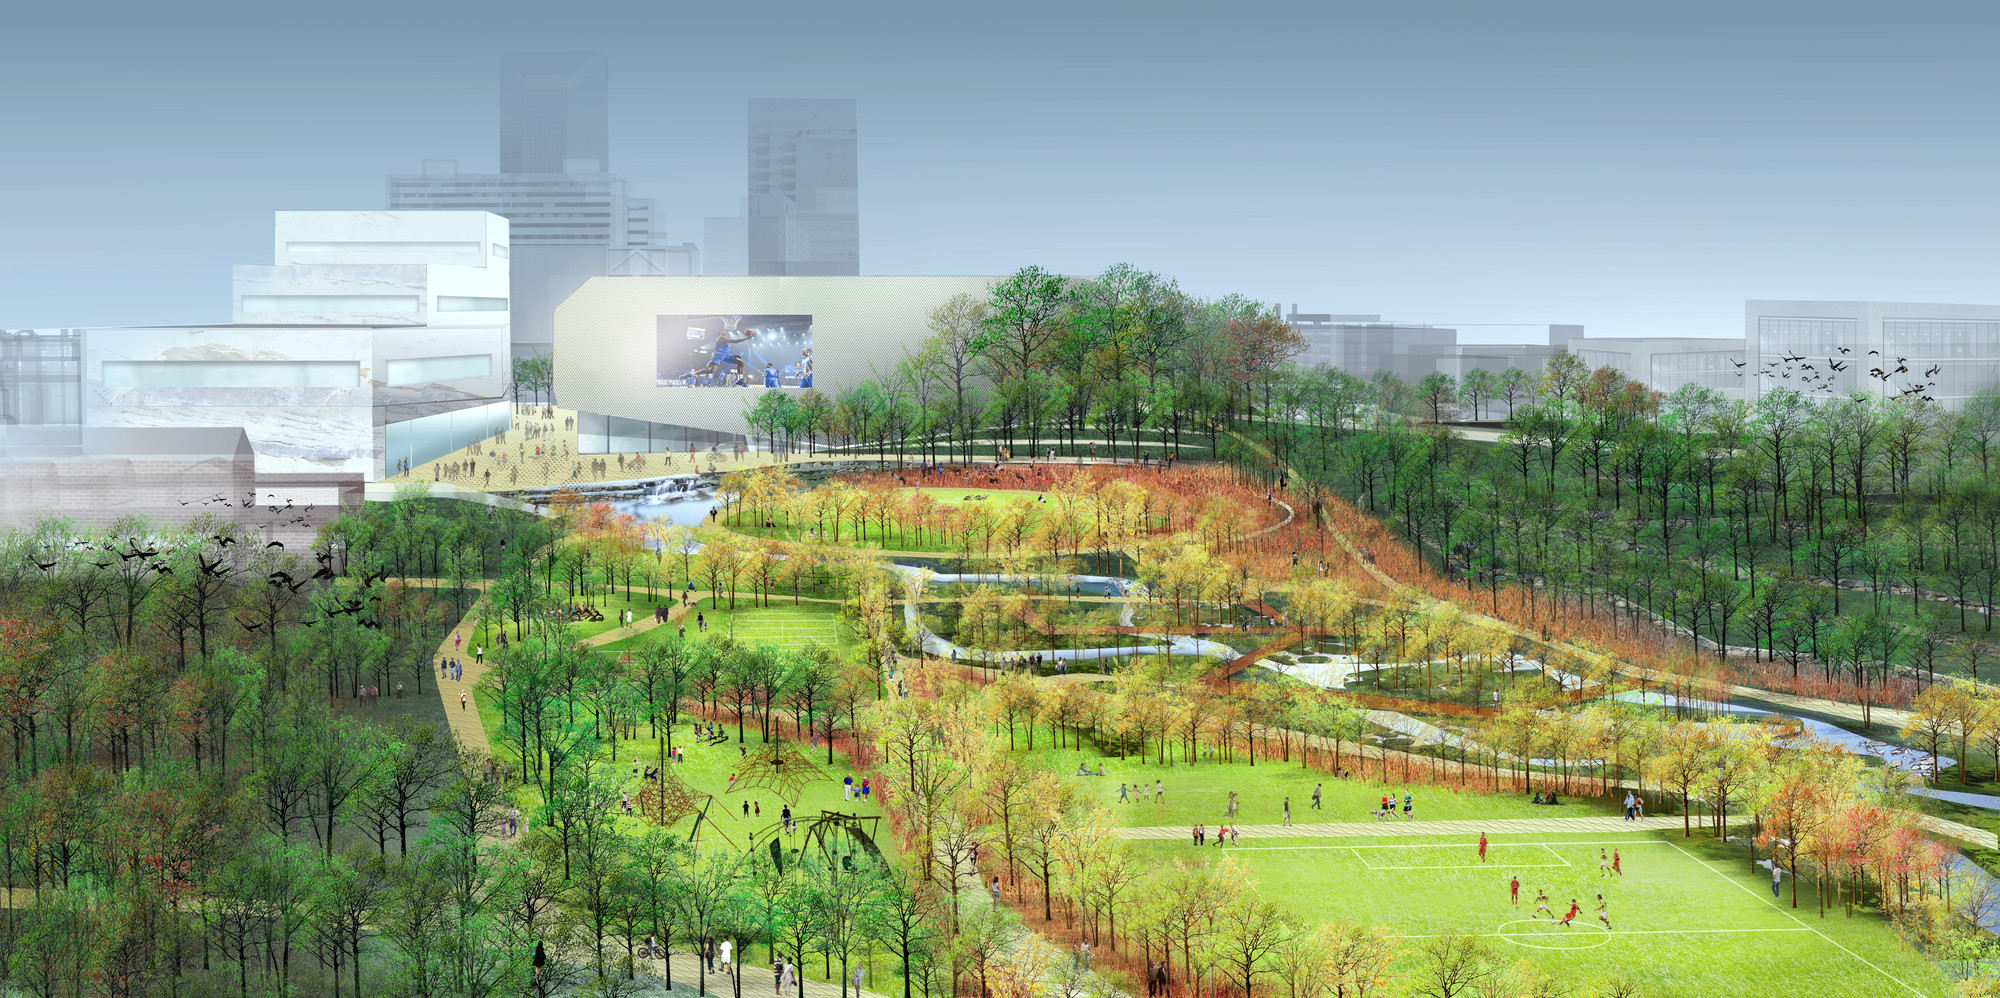 Scape landscape architecture wins competition for for Landscape architecture